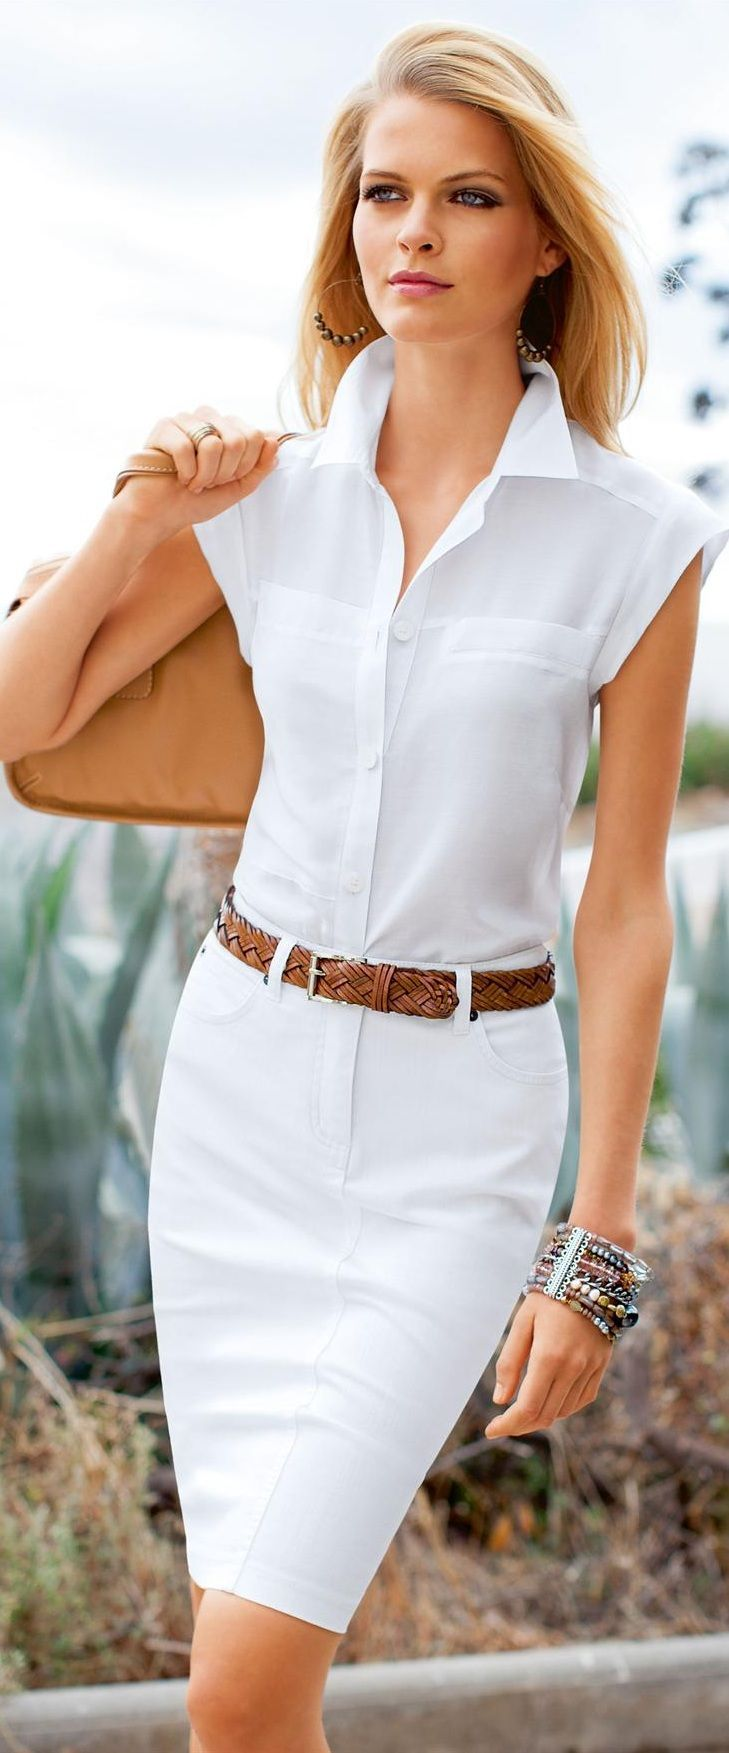 bc41a8efa05d 17 Cute Women Outfits with White Shirt-Pairing Style Ideas ...